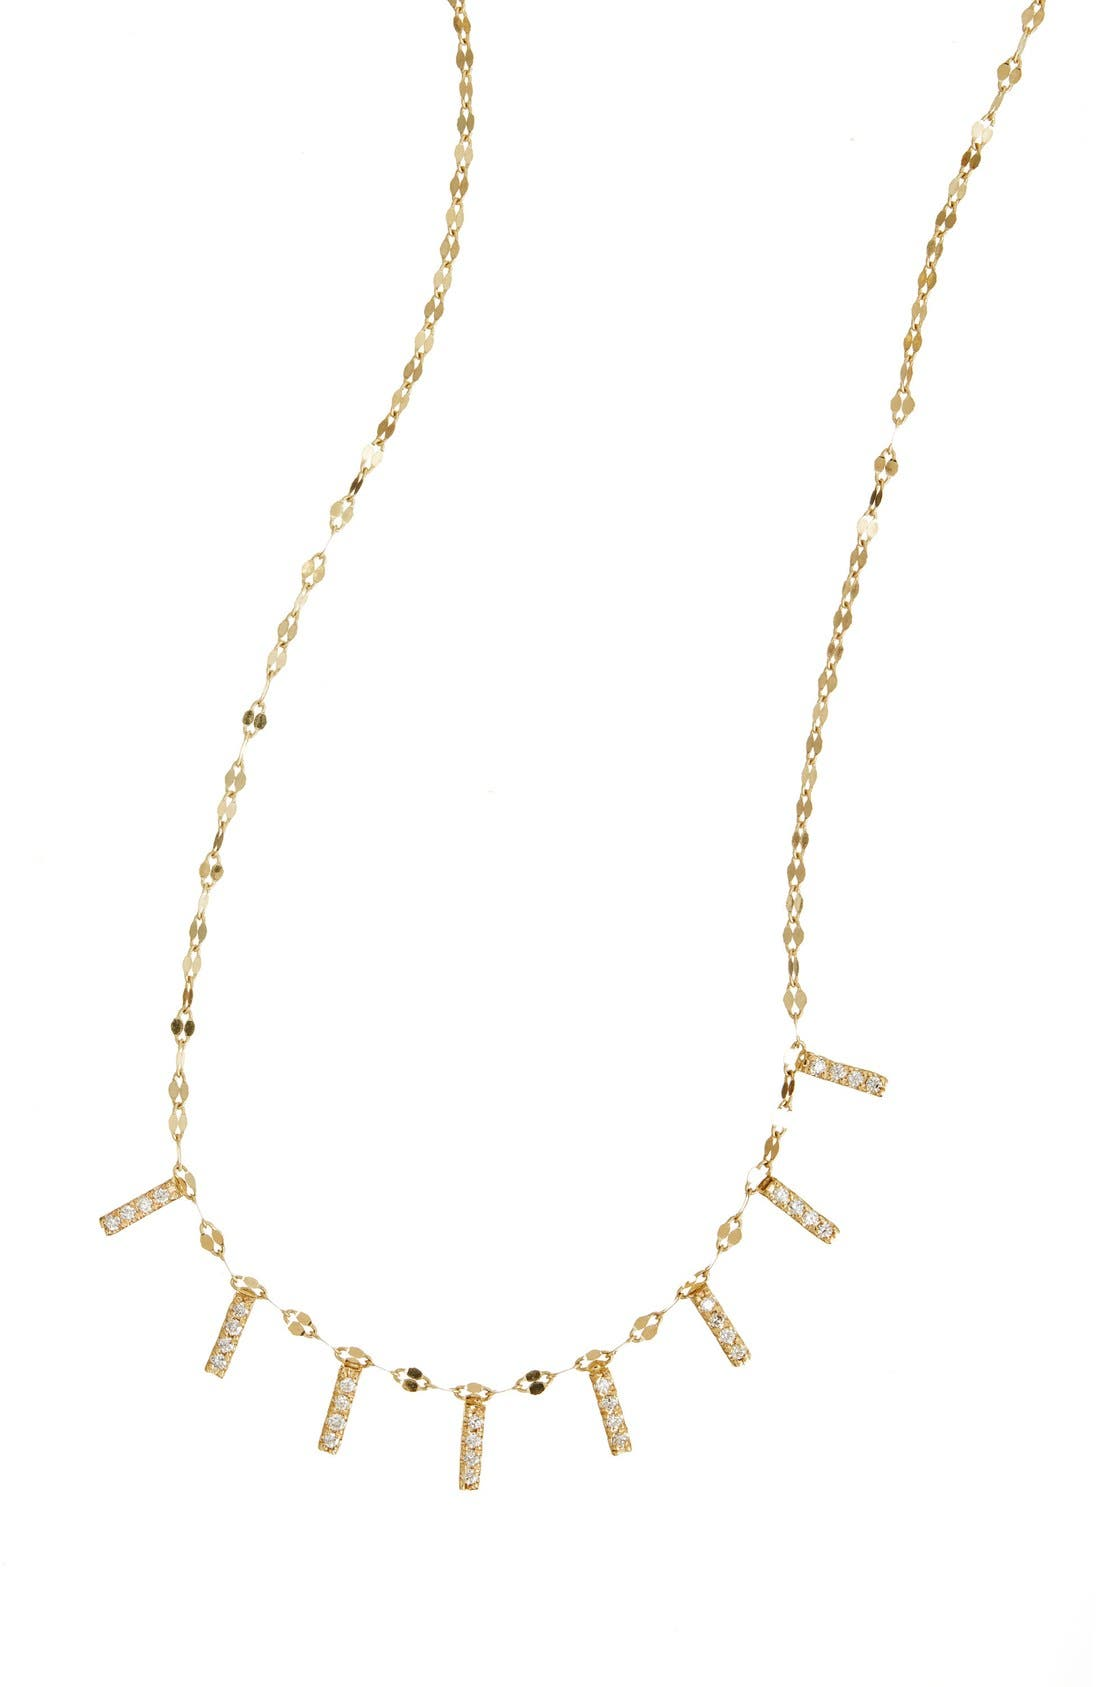 Lana Jewelry 'Flawless' Mini Bar Collar Necklace